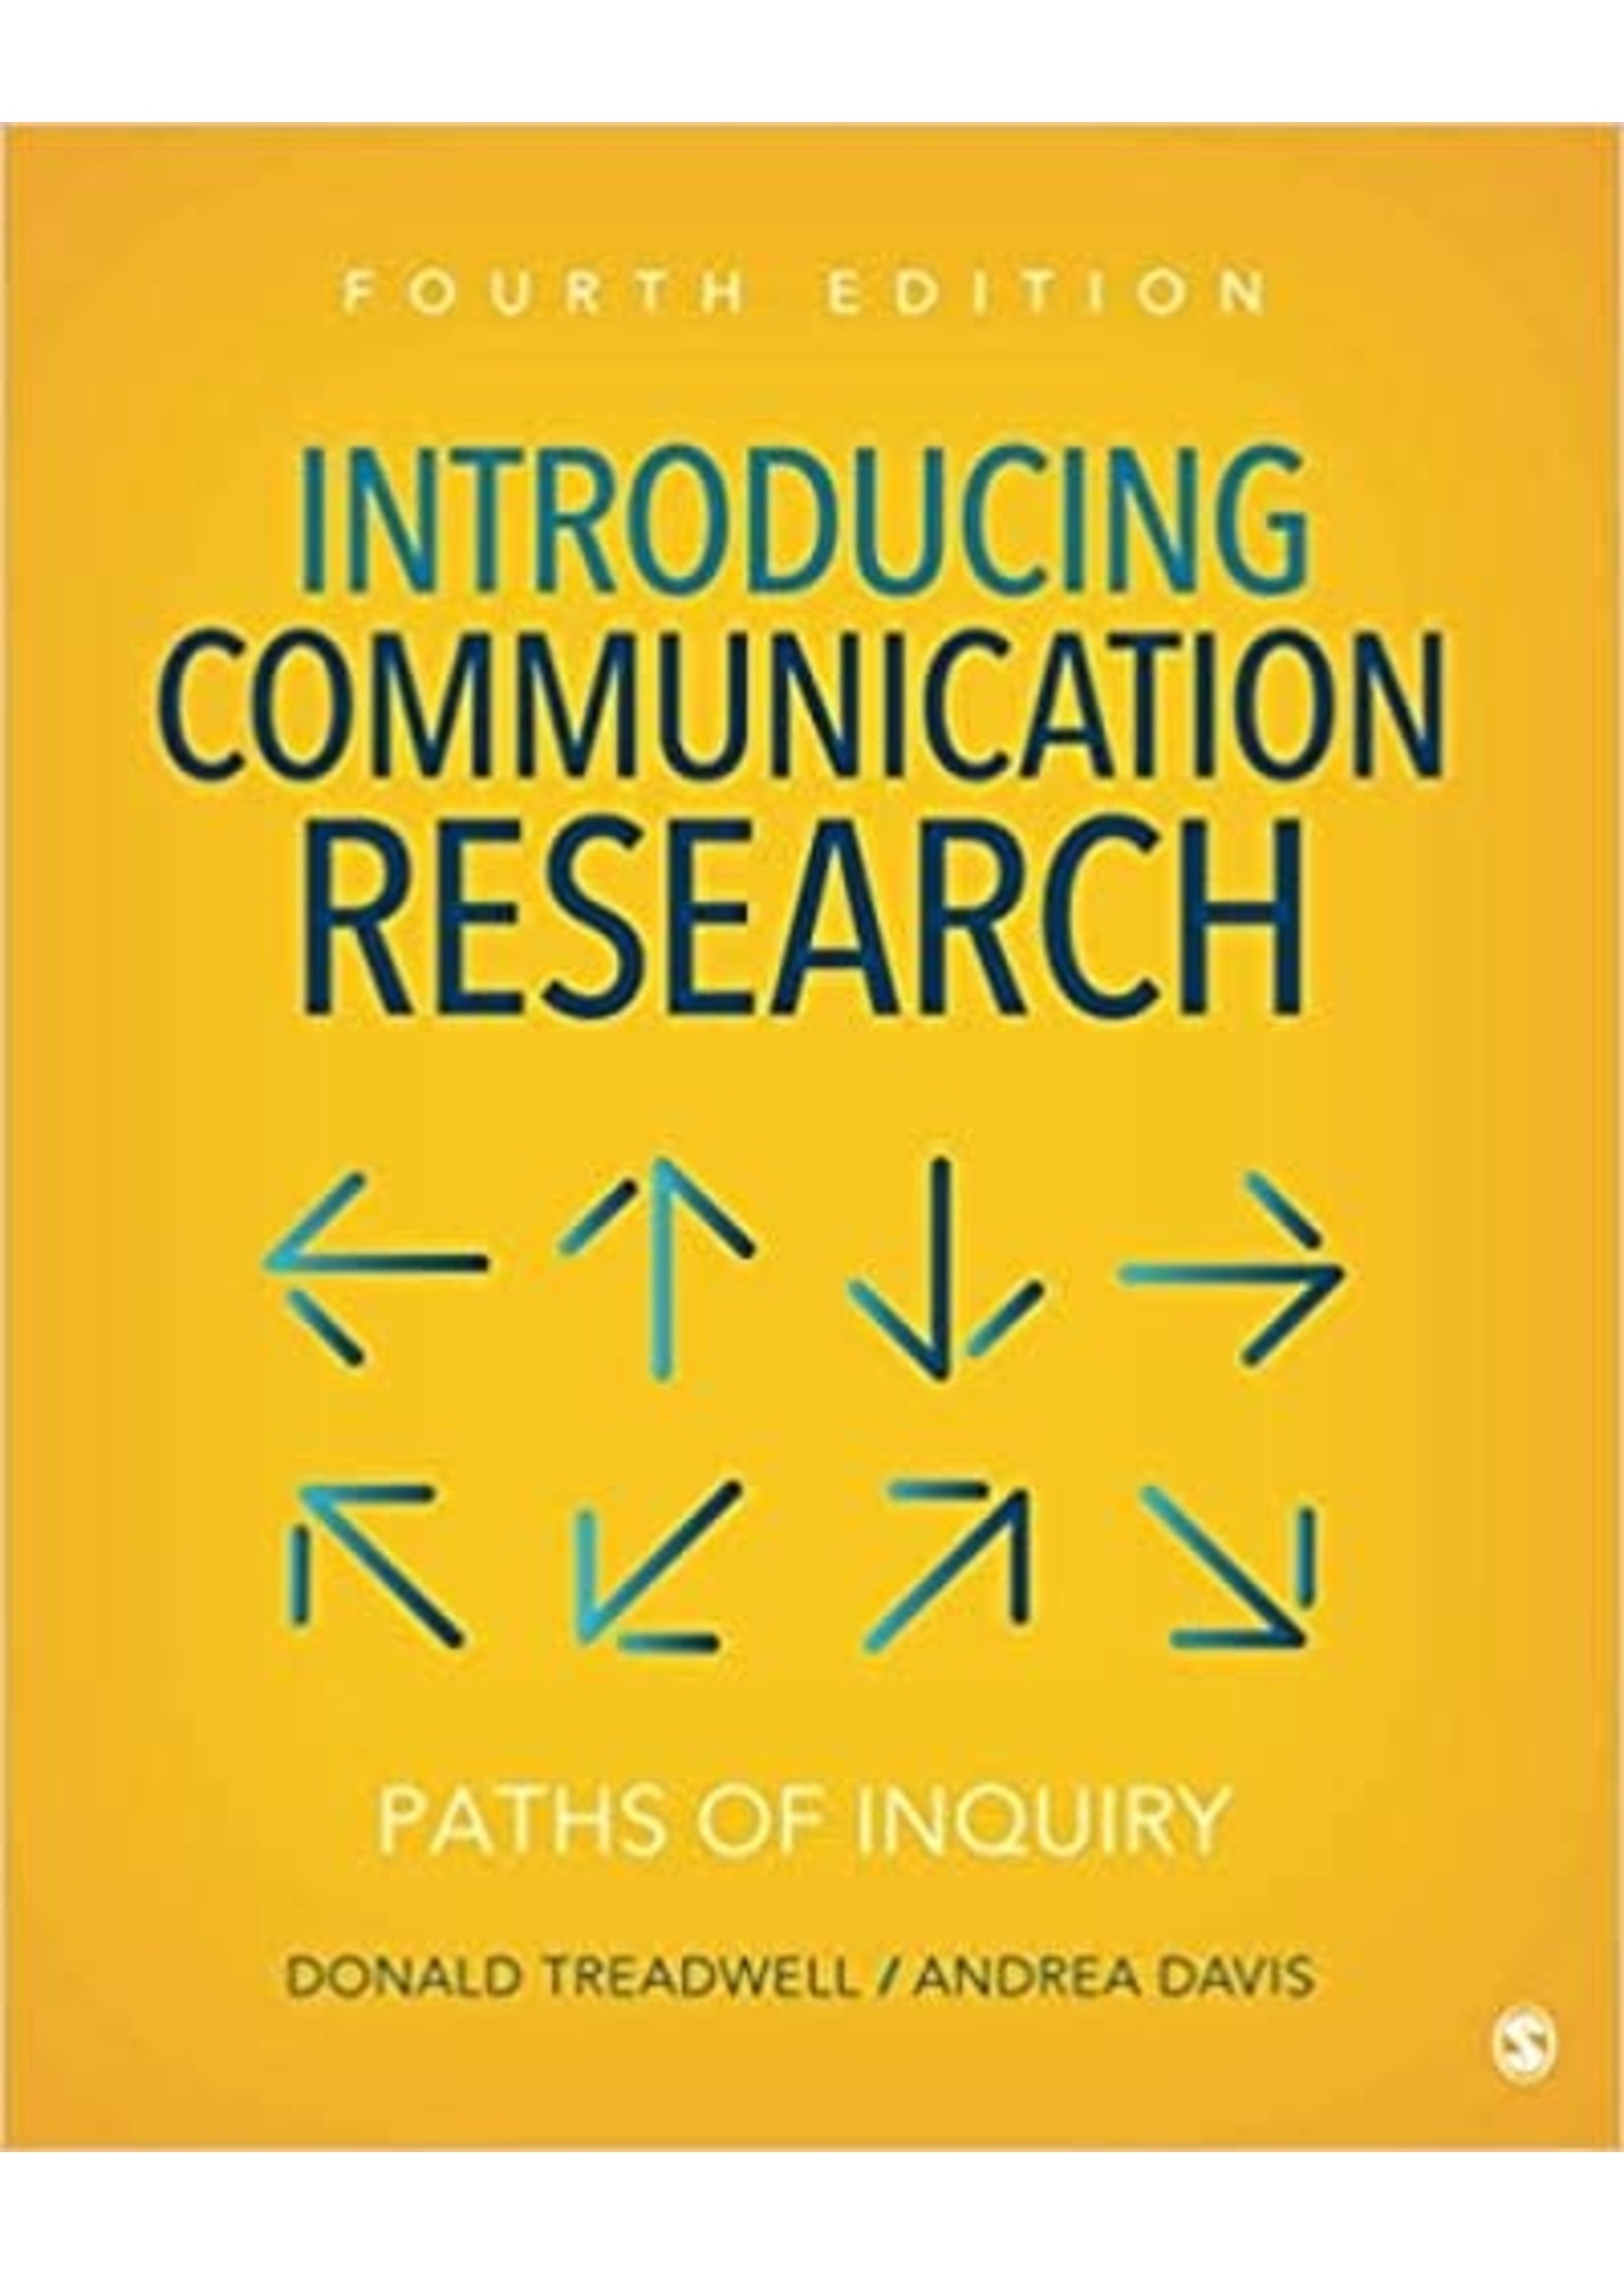 COMS200 INTRO TO COMMUNICATION RESEARCH